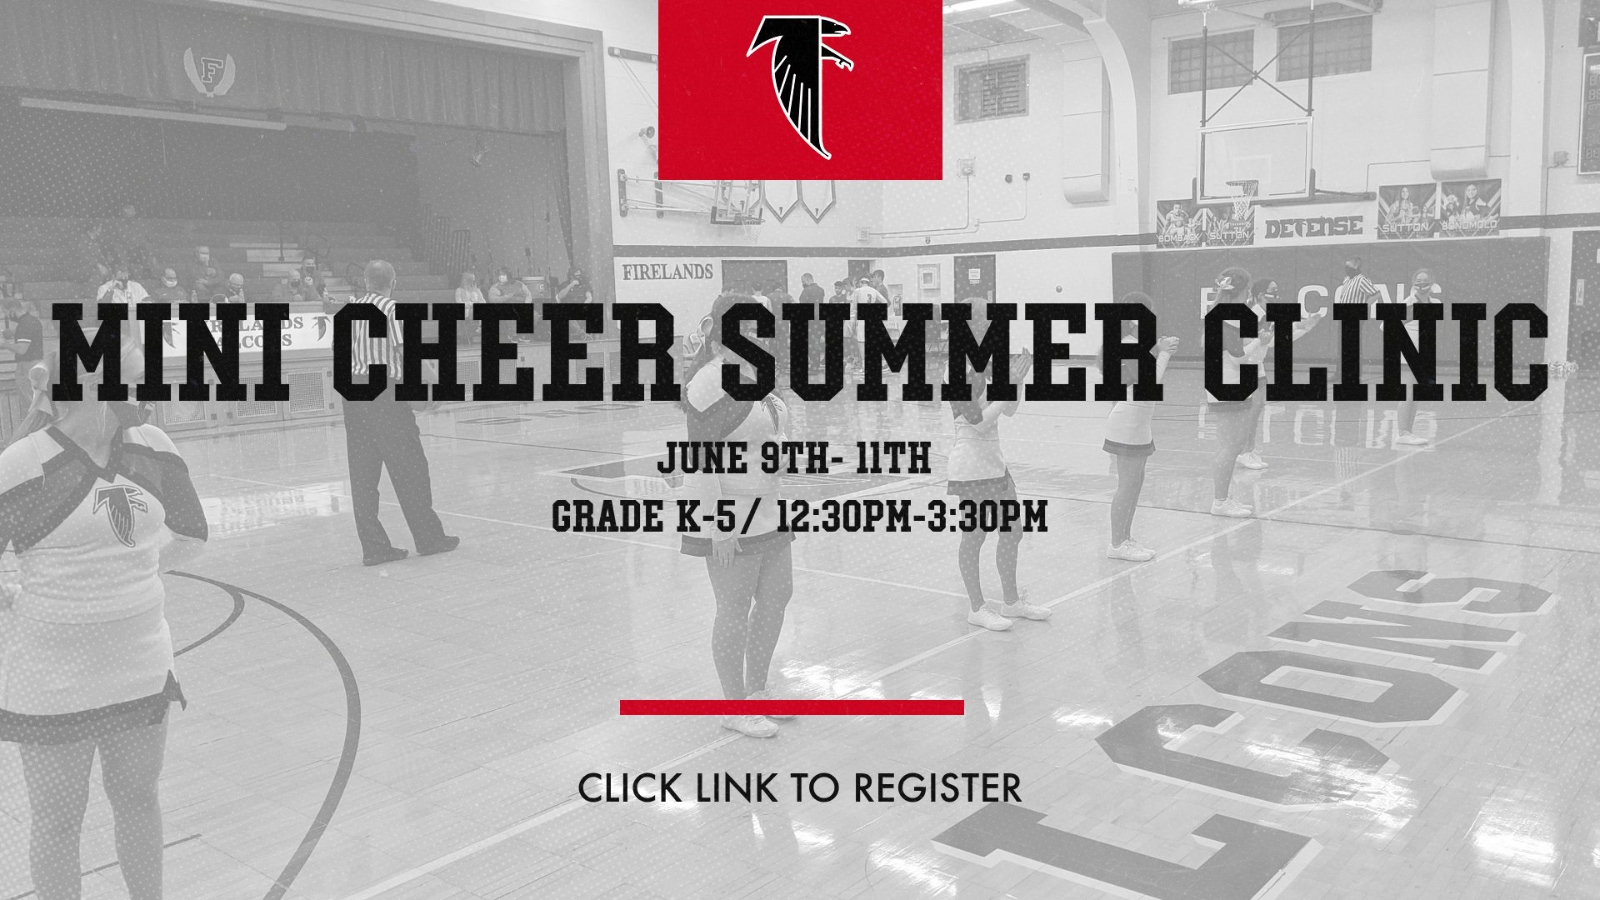 Mini Cheer Summer Camp Registration